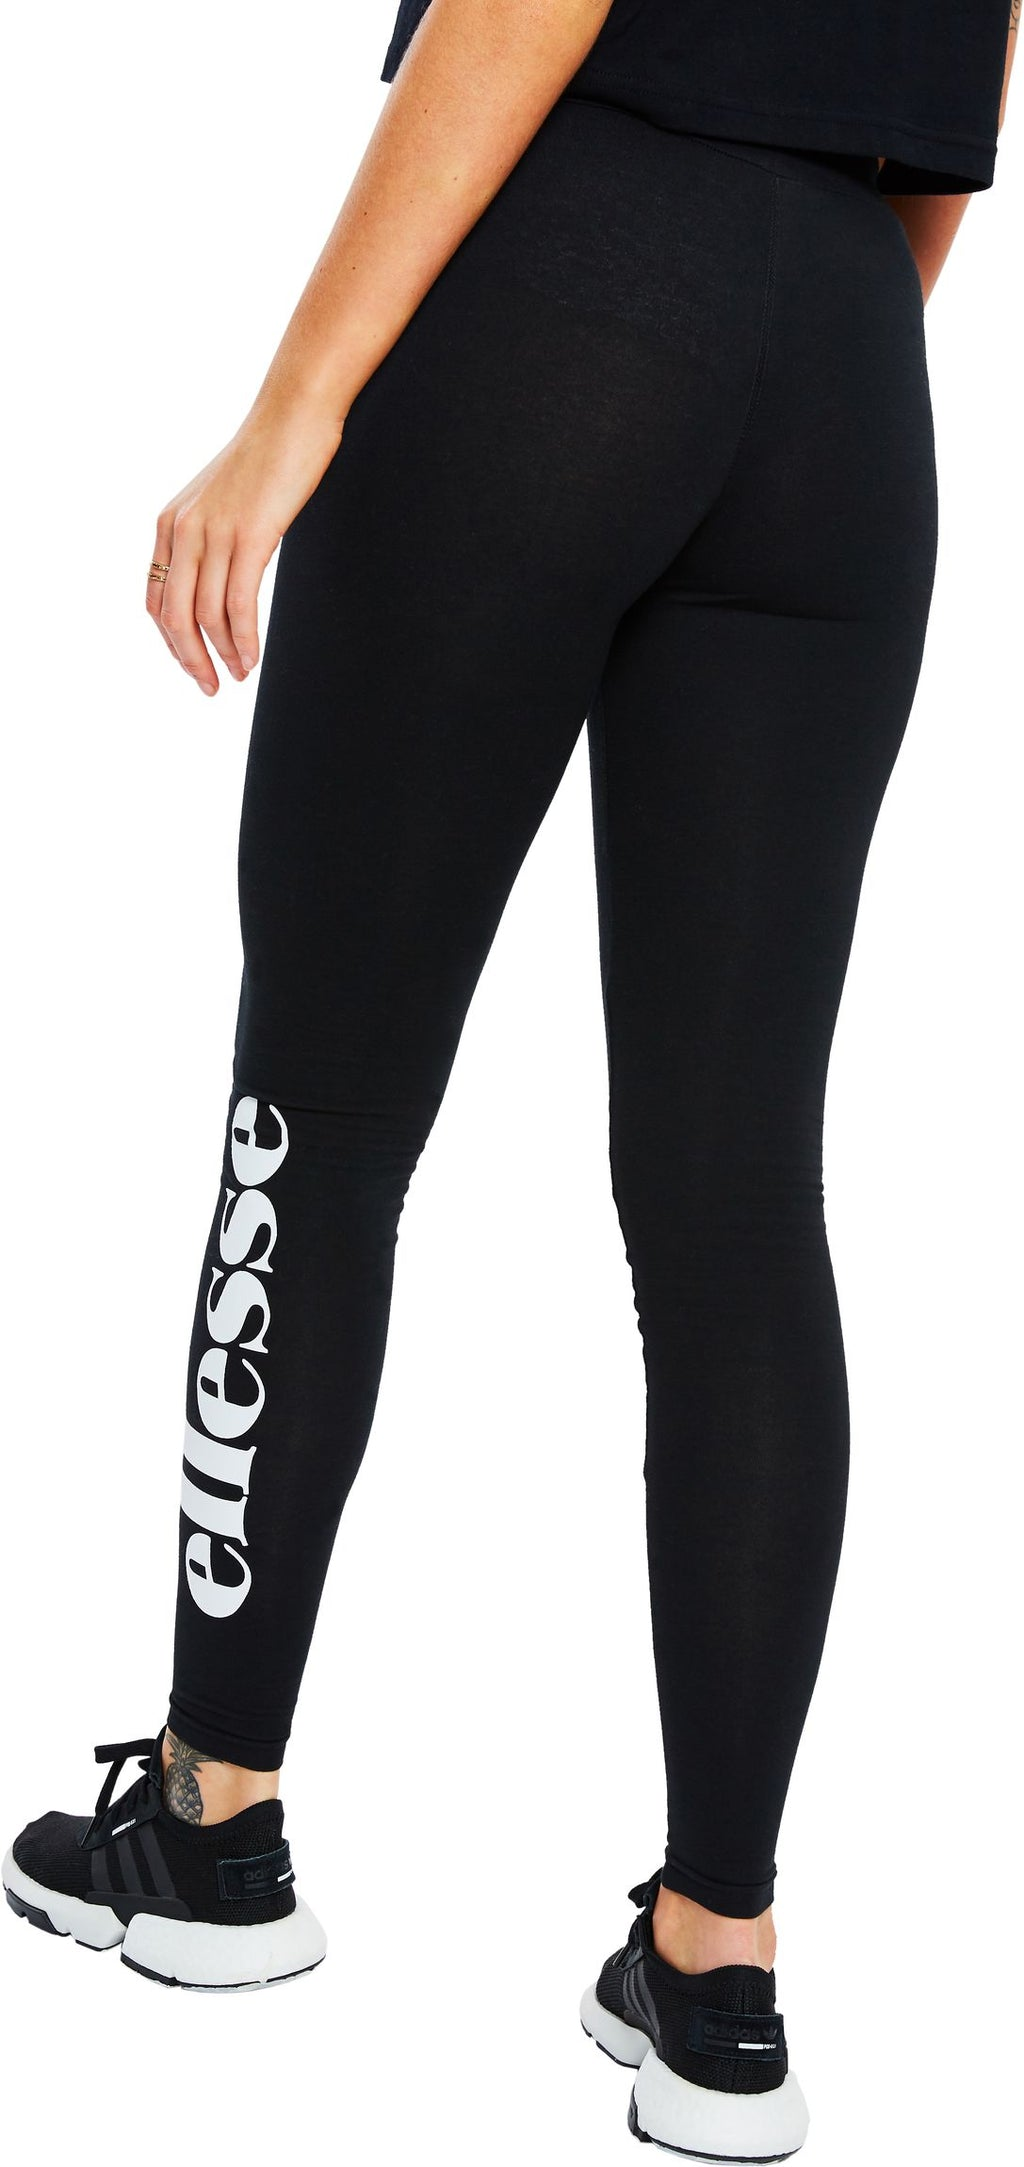 Ellesse Solos 2 Leggings Black